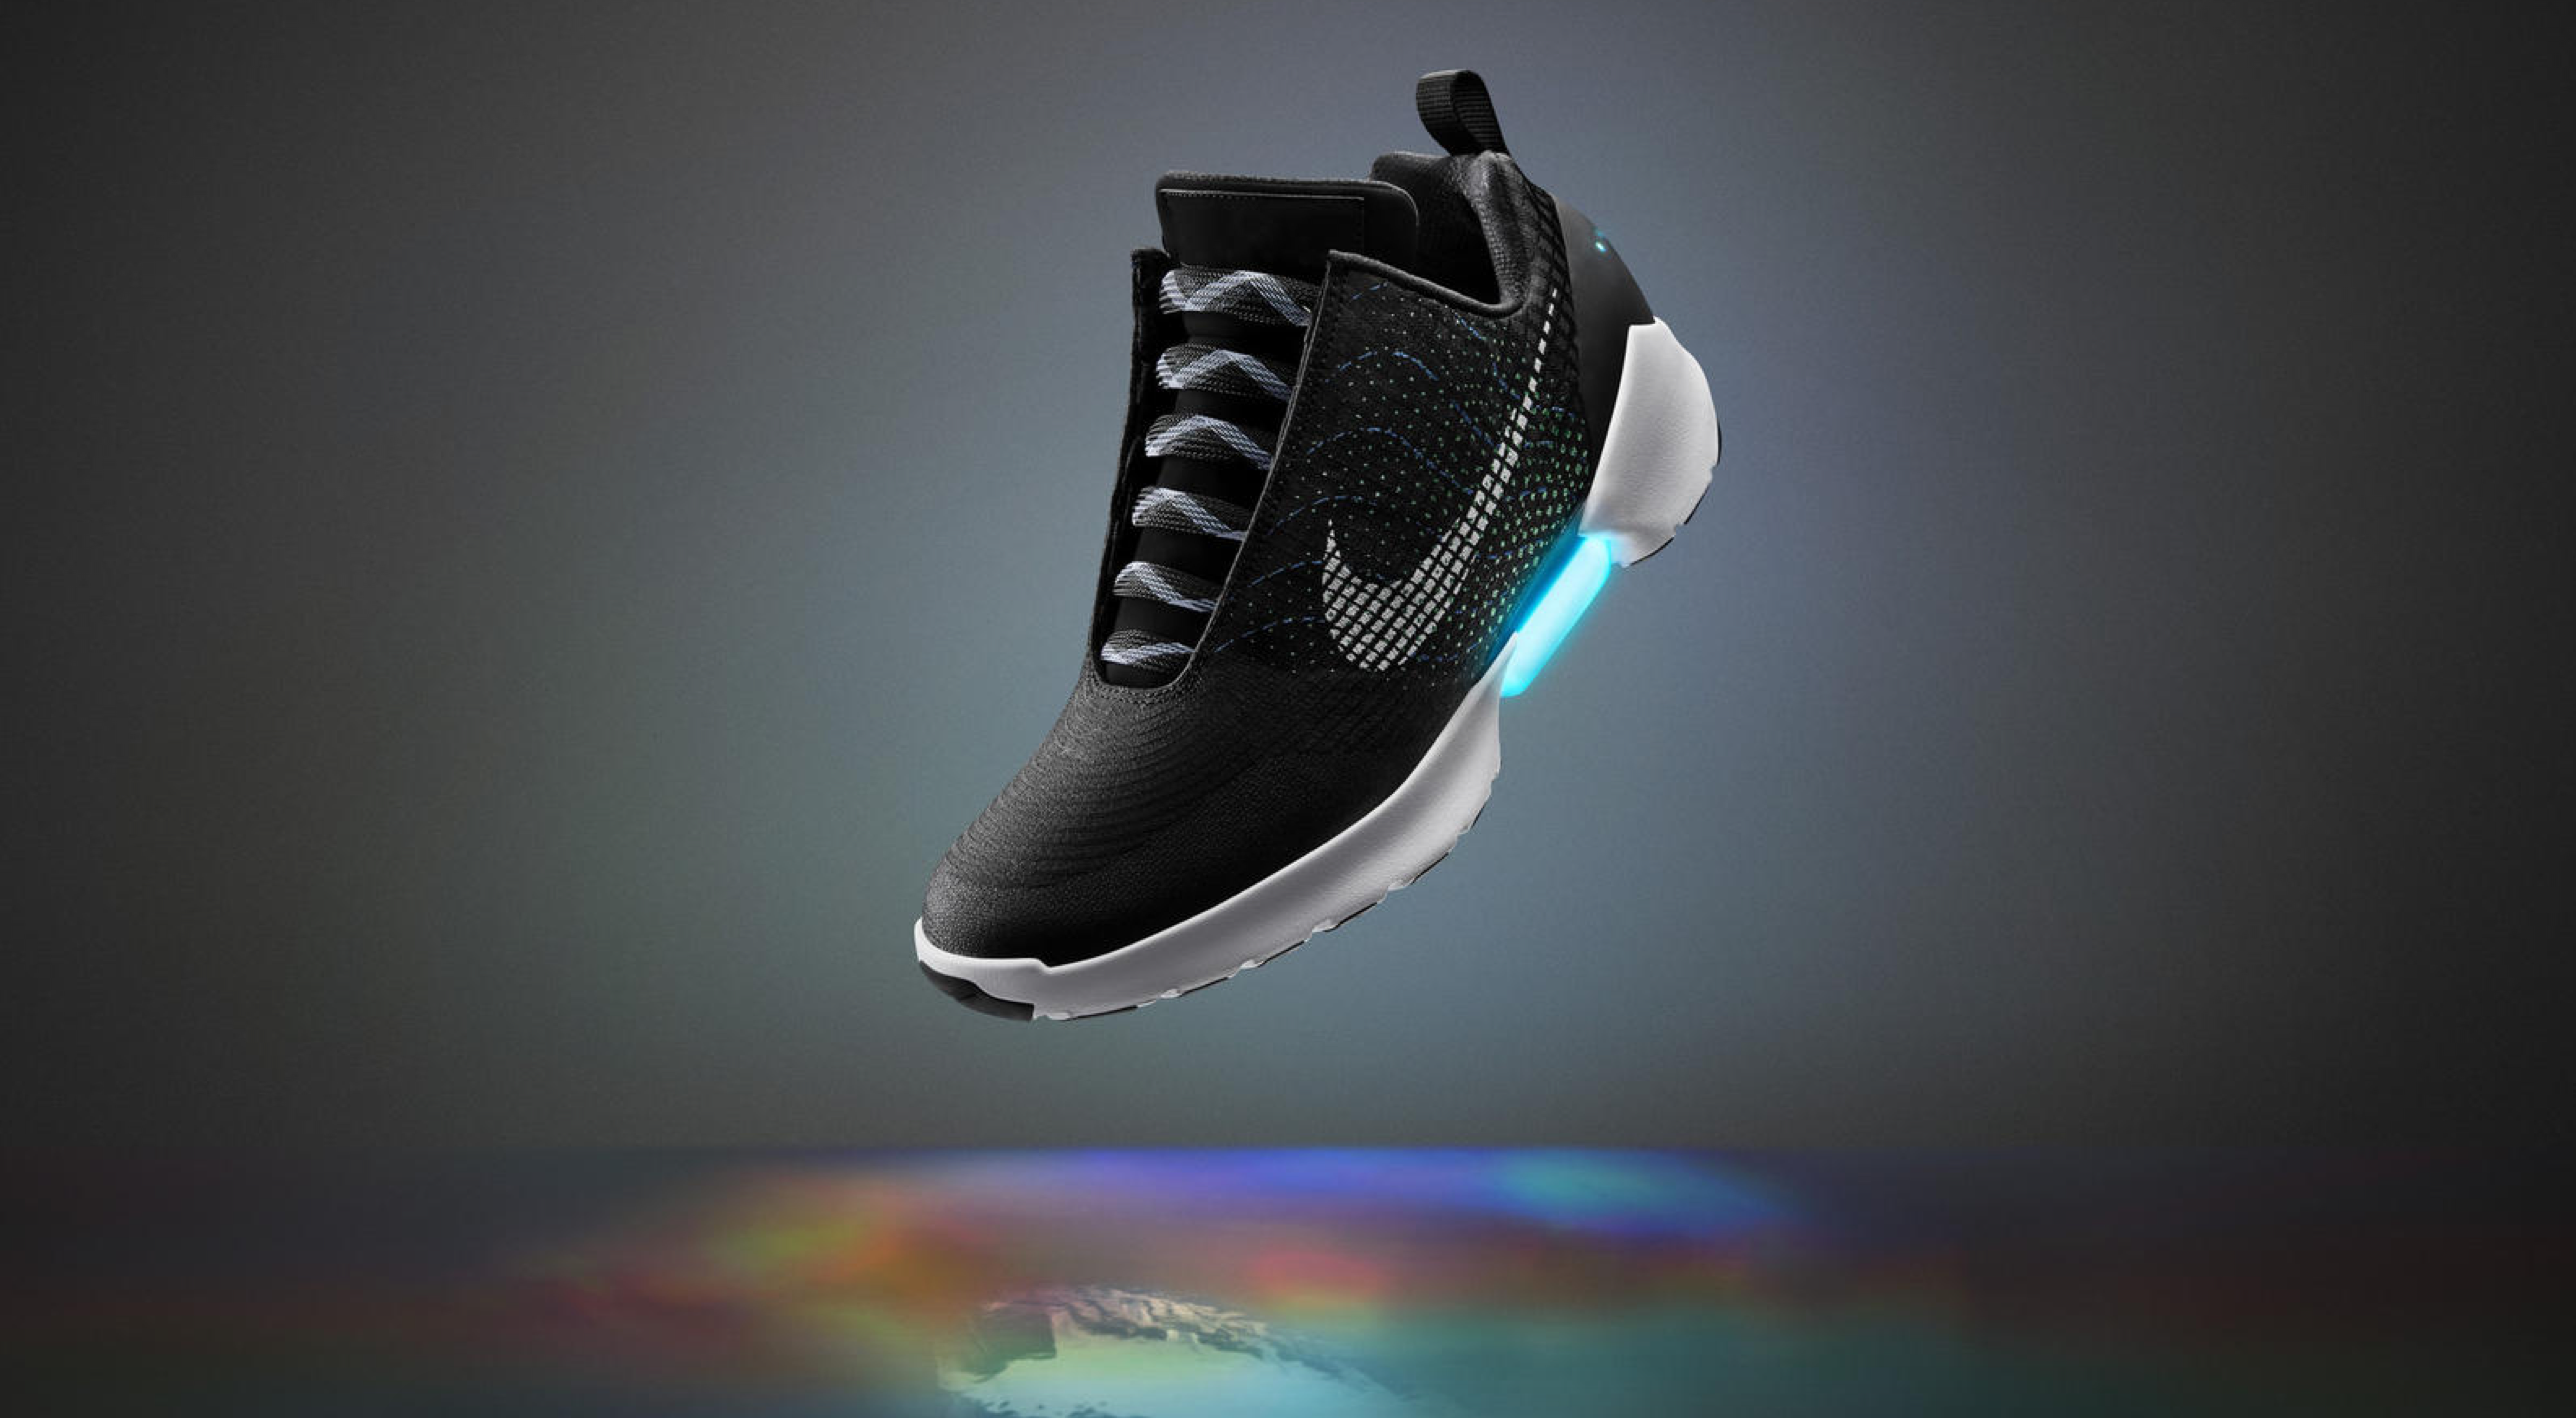 Nike's HyperAdapt 1.0 self-lacing shoes will soft launch for Nike+ members at the end of 2016.